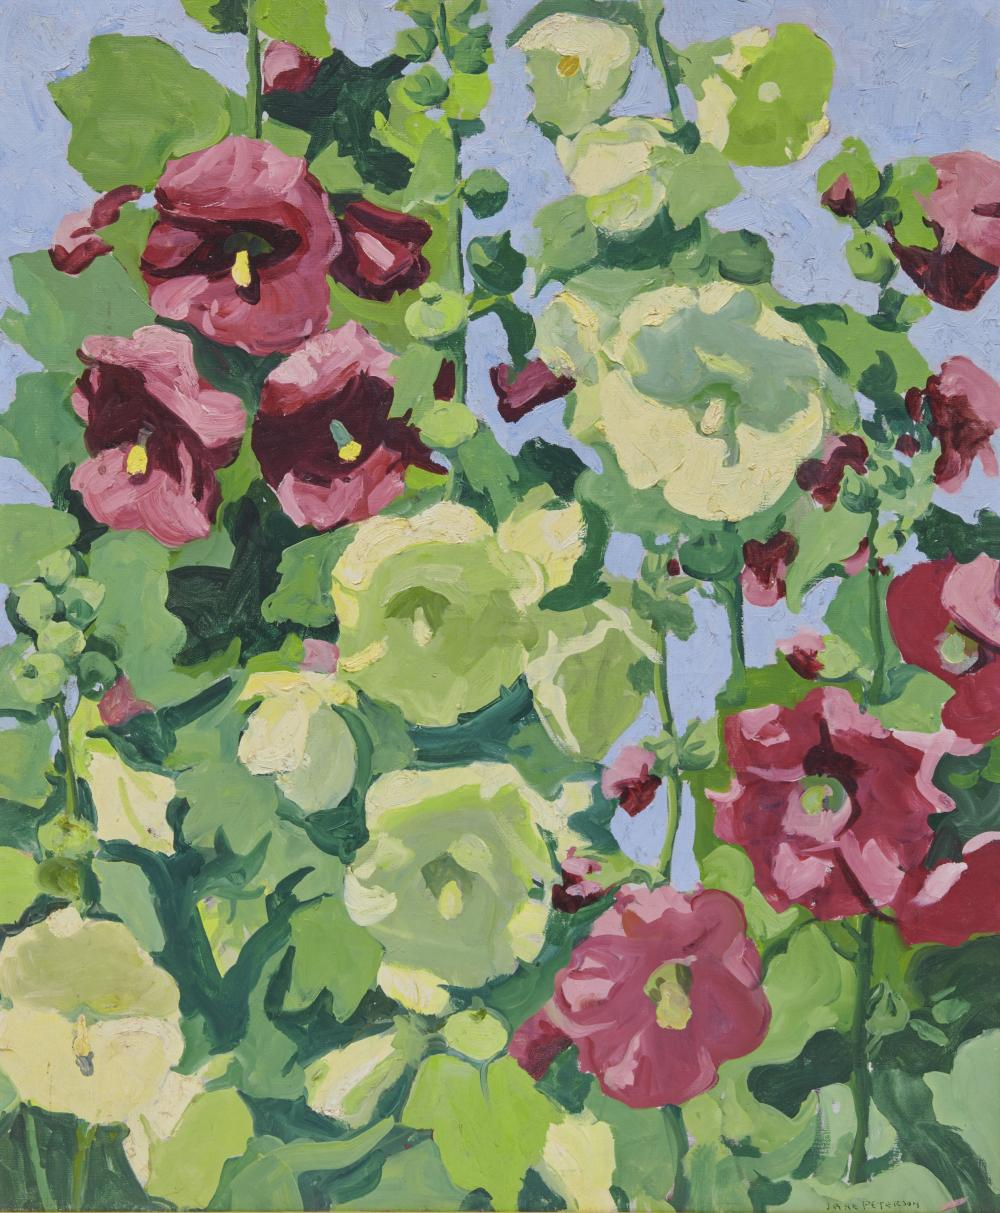 JANE PETERSON, (American, 1876-1965), Hollyhocks, Gloucester, 1952, oil on canvas, 30 x 25 in., frame: 30 x 35 in.